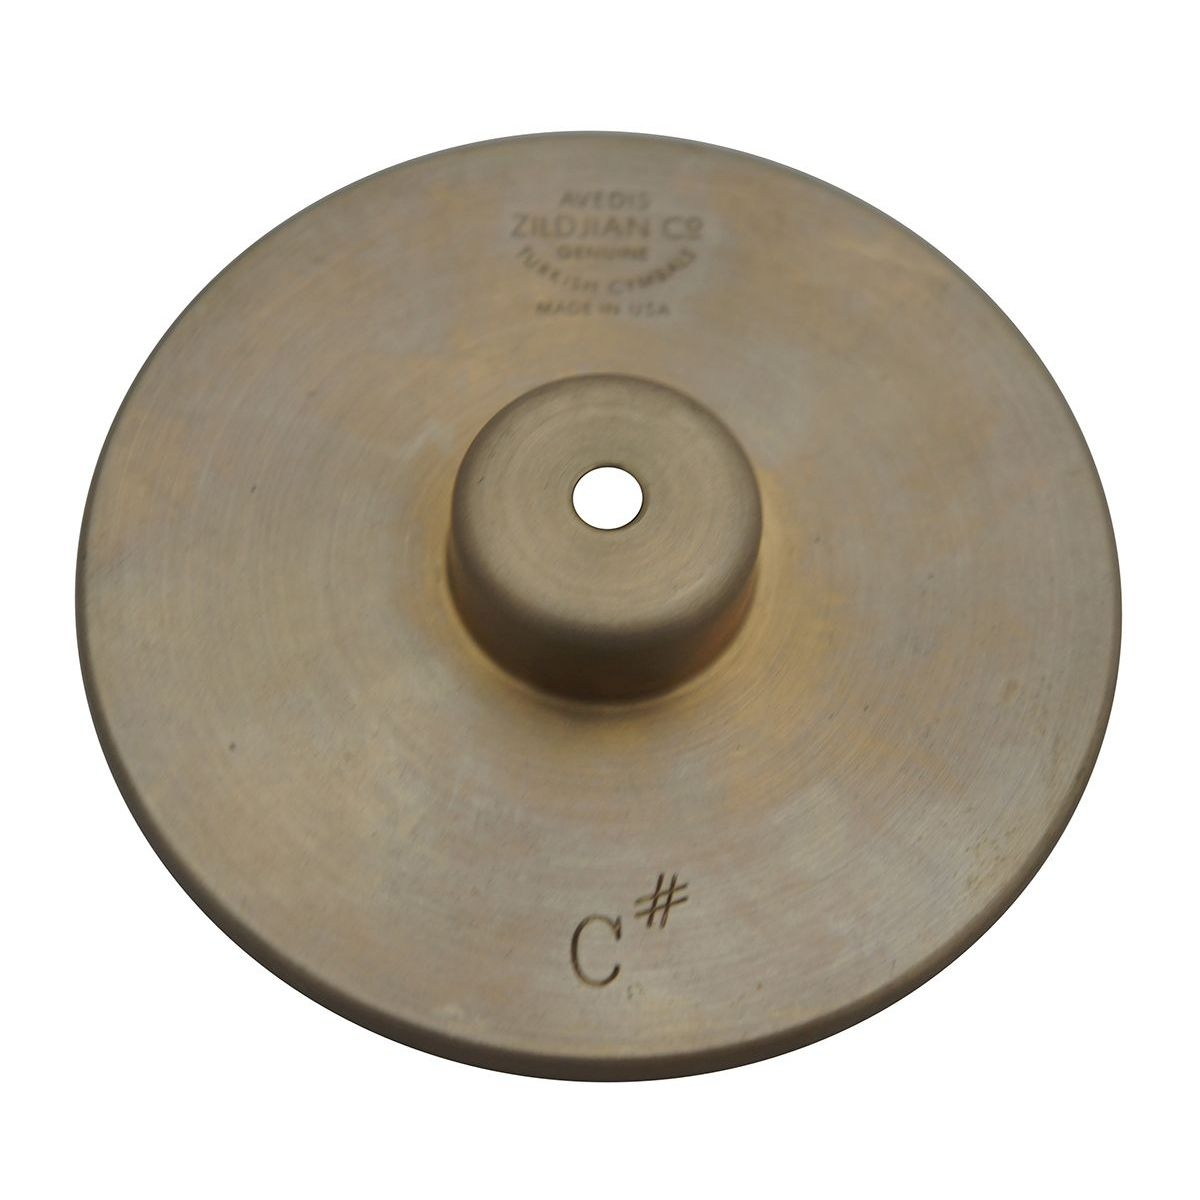 Zildjian P0612C# Crotale Single Note  C# High - Used